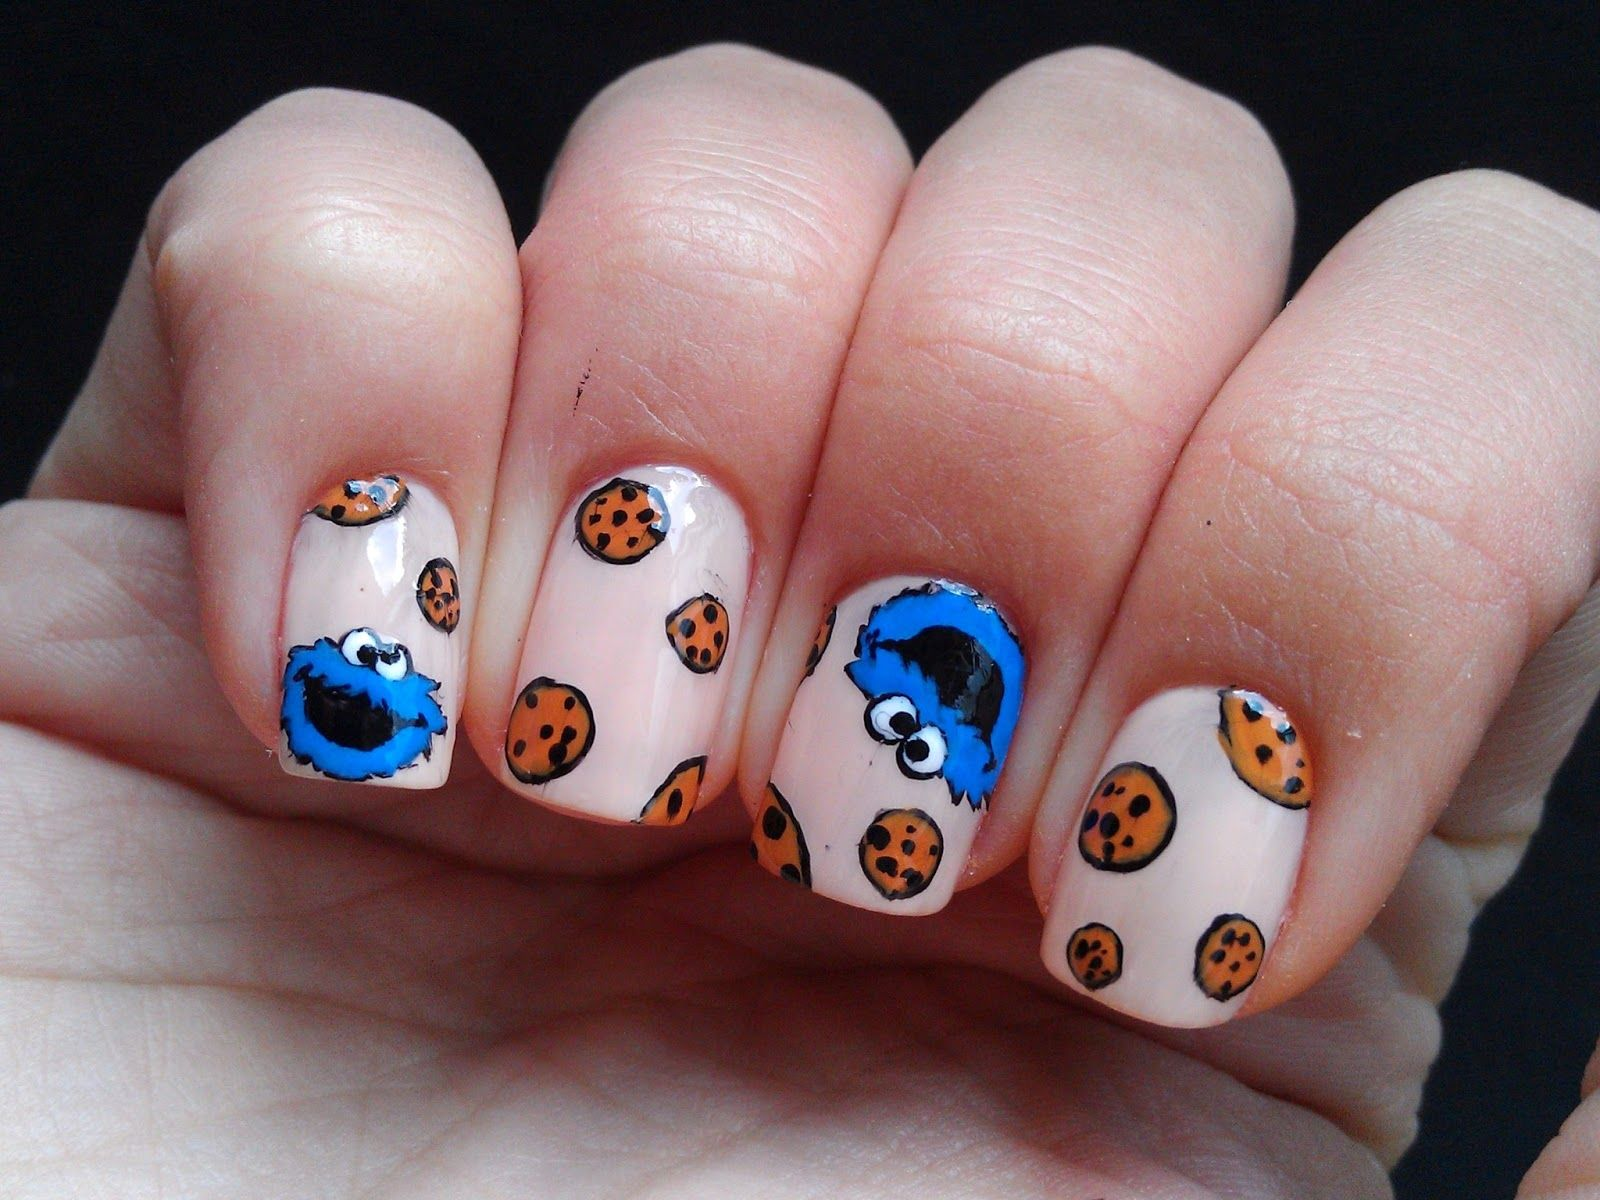 Tattoo Nail Art Turials So You Can Comprehend How I Painted My